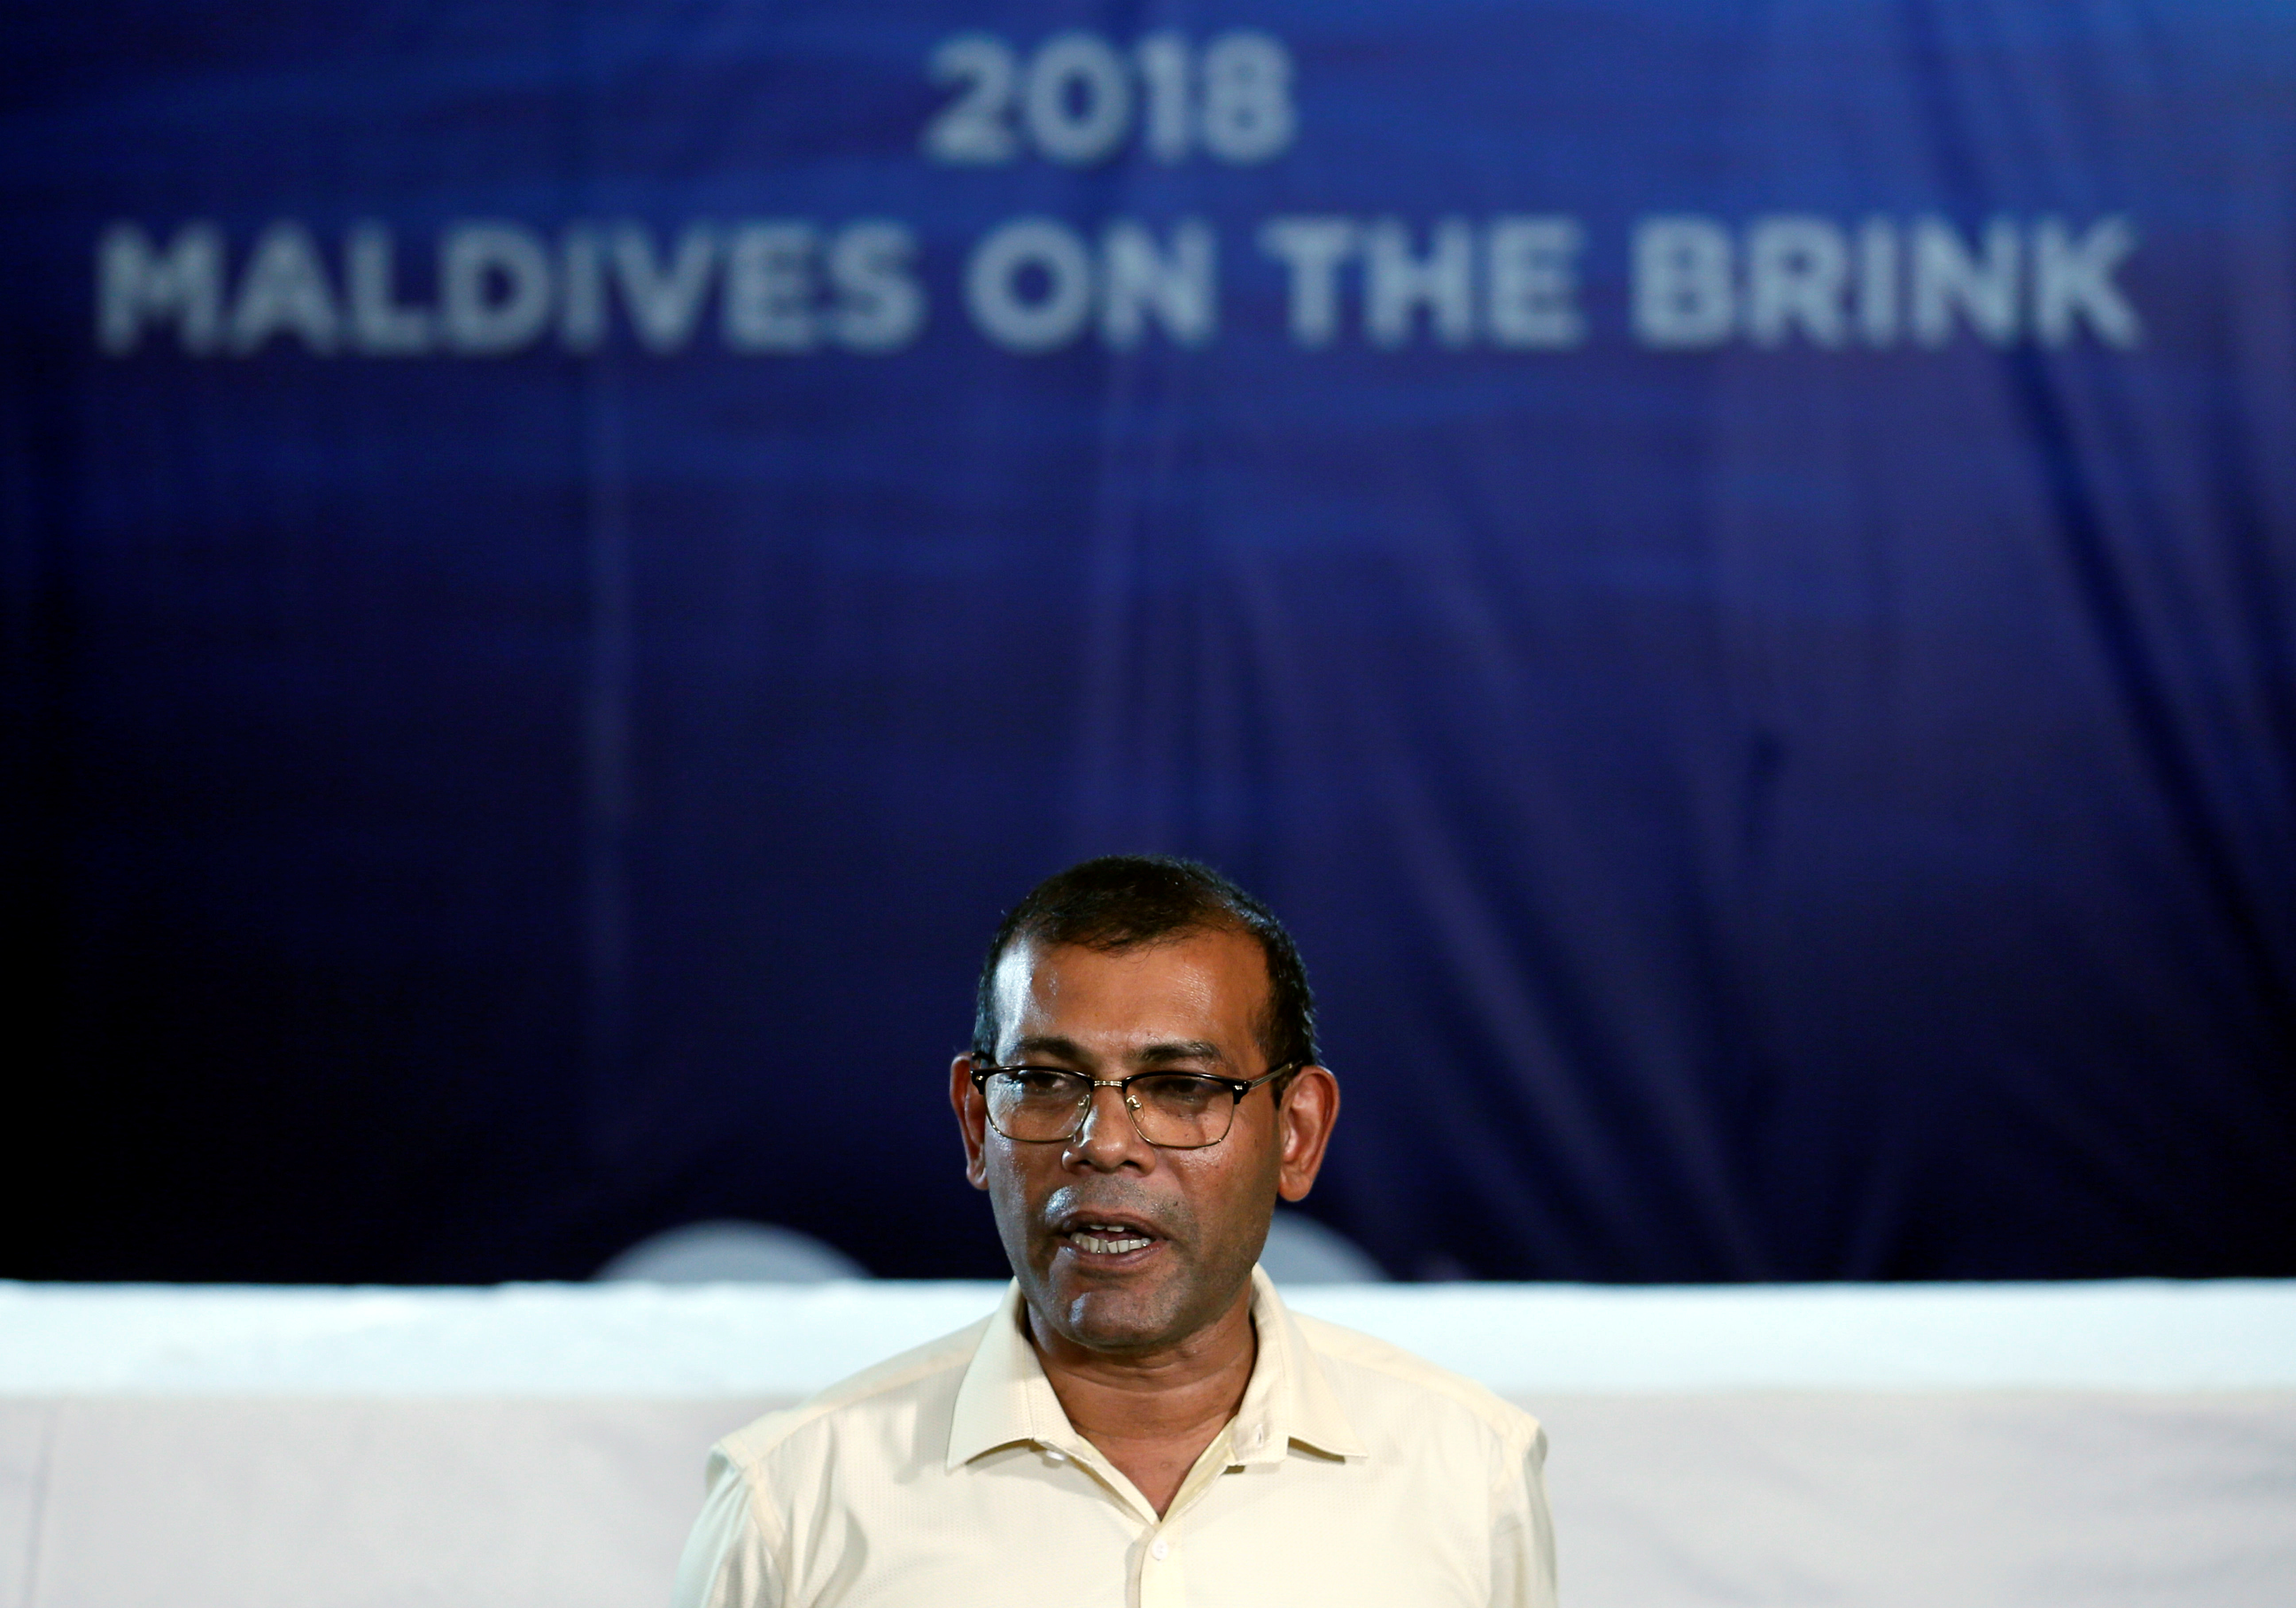 Maldives former President Mohamed Nasheed speaks to the media at the end of the Maldives presidential election day at a hotel in Colombo, Sri Lanka September 24, 2018. REUTERS/Dinuka Liyanawatte